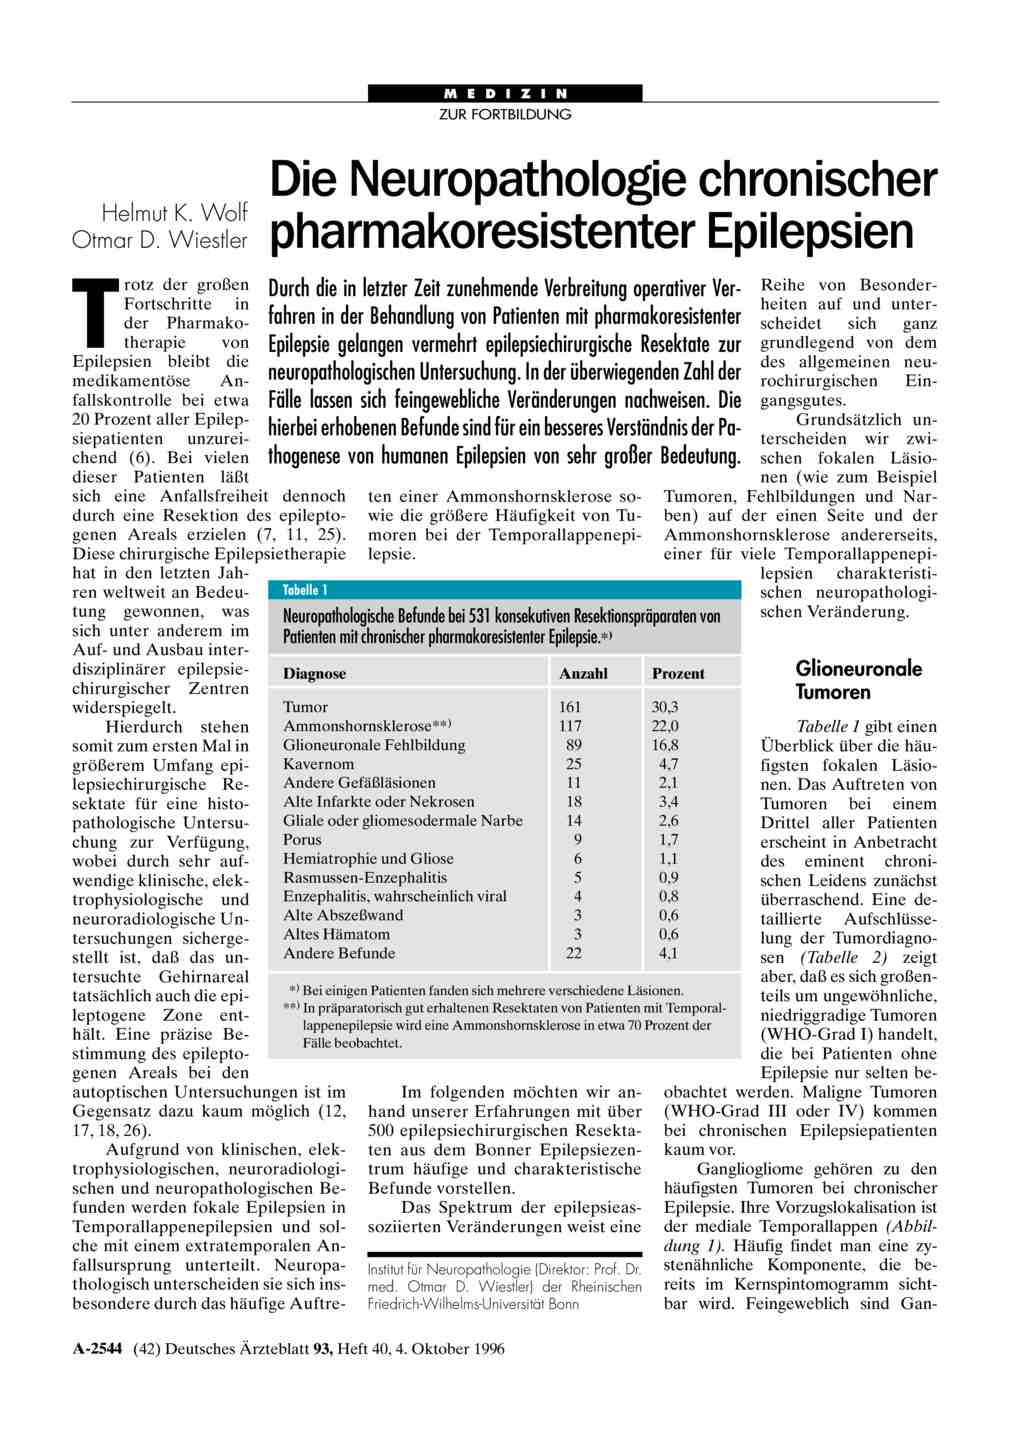 Die Neuropathologie chronischer pharmakoresistenter Epilepsien